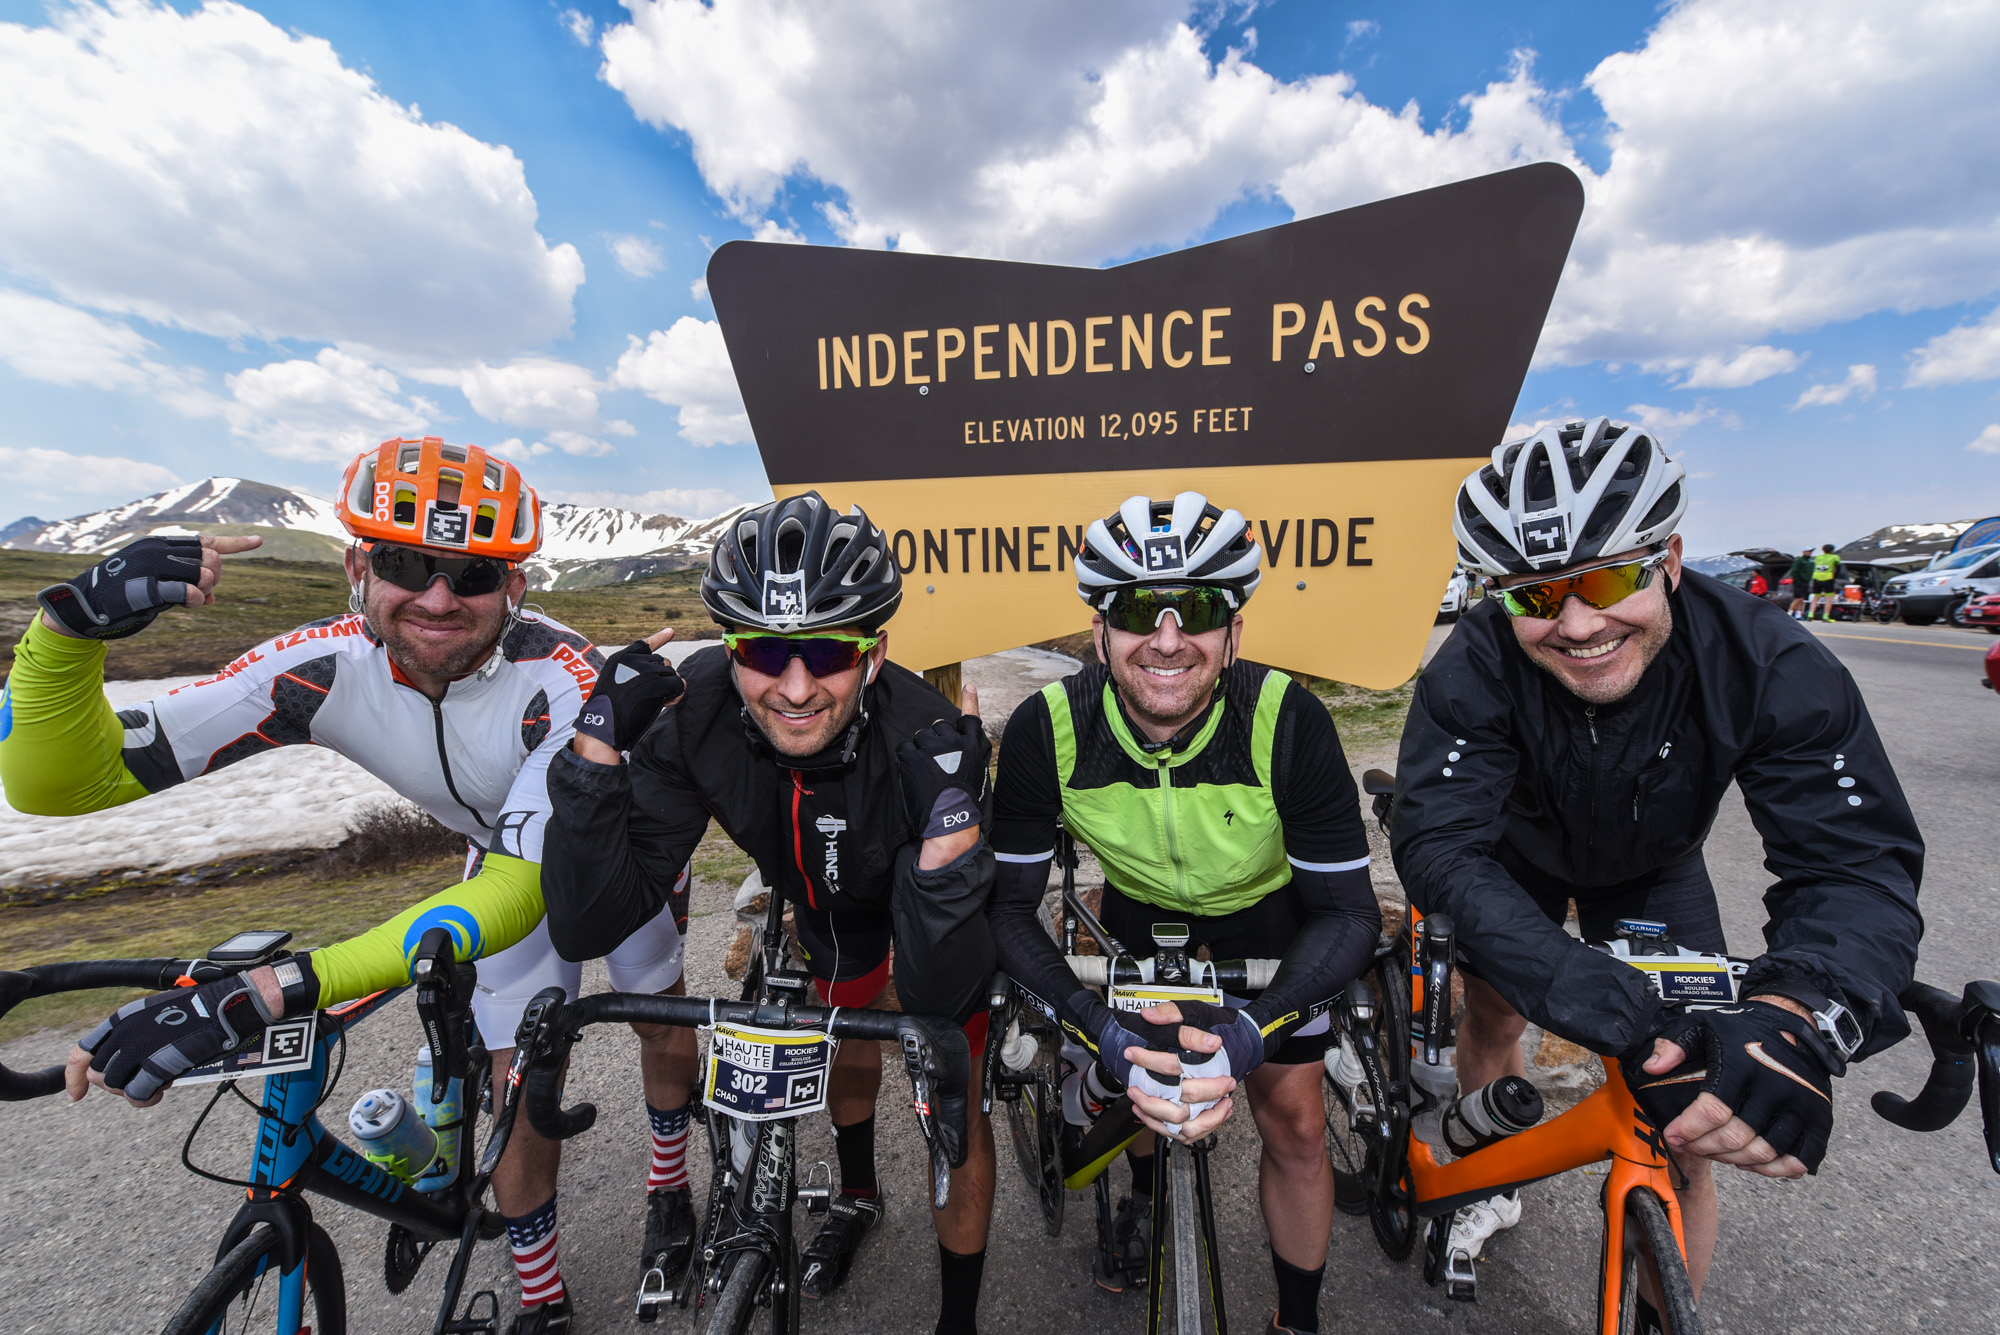 Independence Pass - The highest col ridden on an Haute Route to date